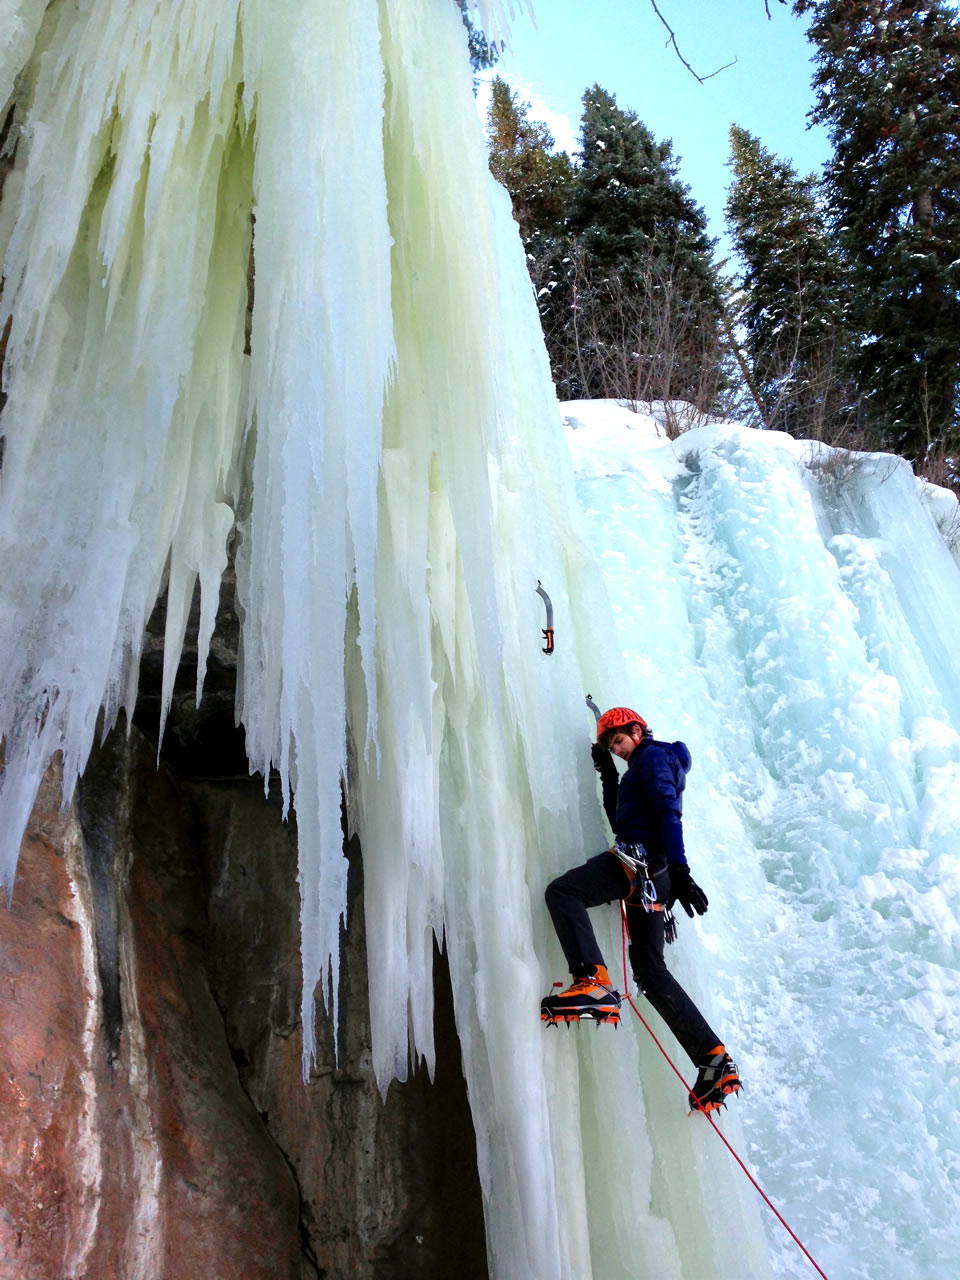 The Hi Q Luxe Pro Pull On's durable water-resistant coating and super durable fabric meant it was tough enough to climb both rock and ice in a variety of conditions. Here, Alexander Kenan takes it for a test spin on this ice curtain to the left of Spiral Staircase (WI4) in Vail, Colorado. [Photo] Travis Fried